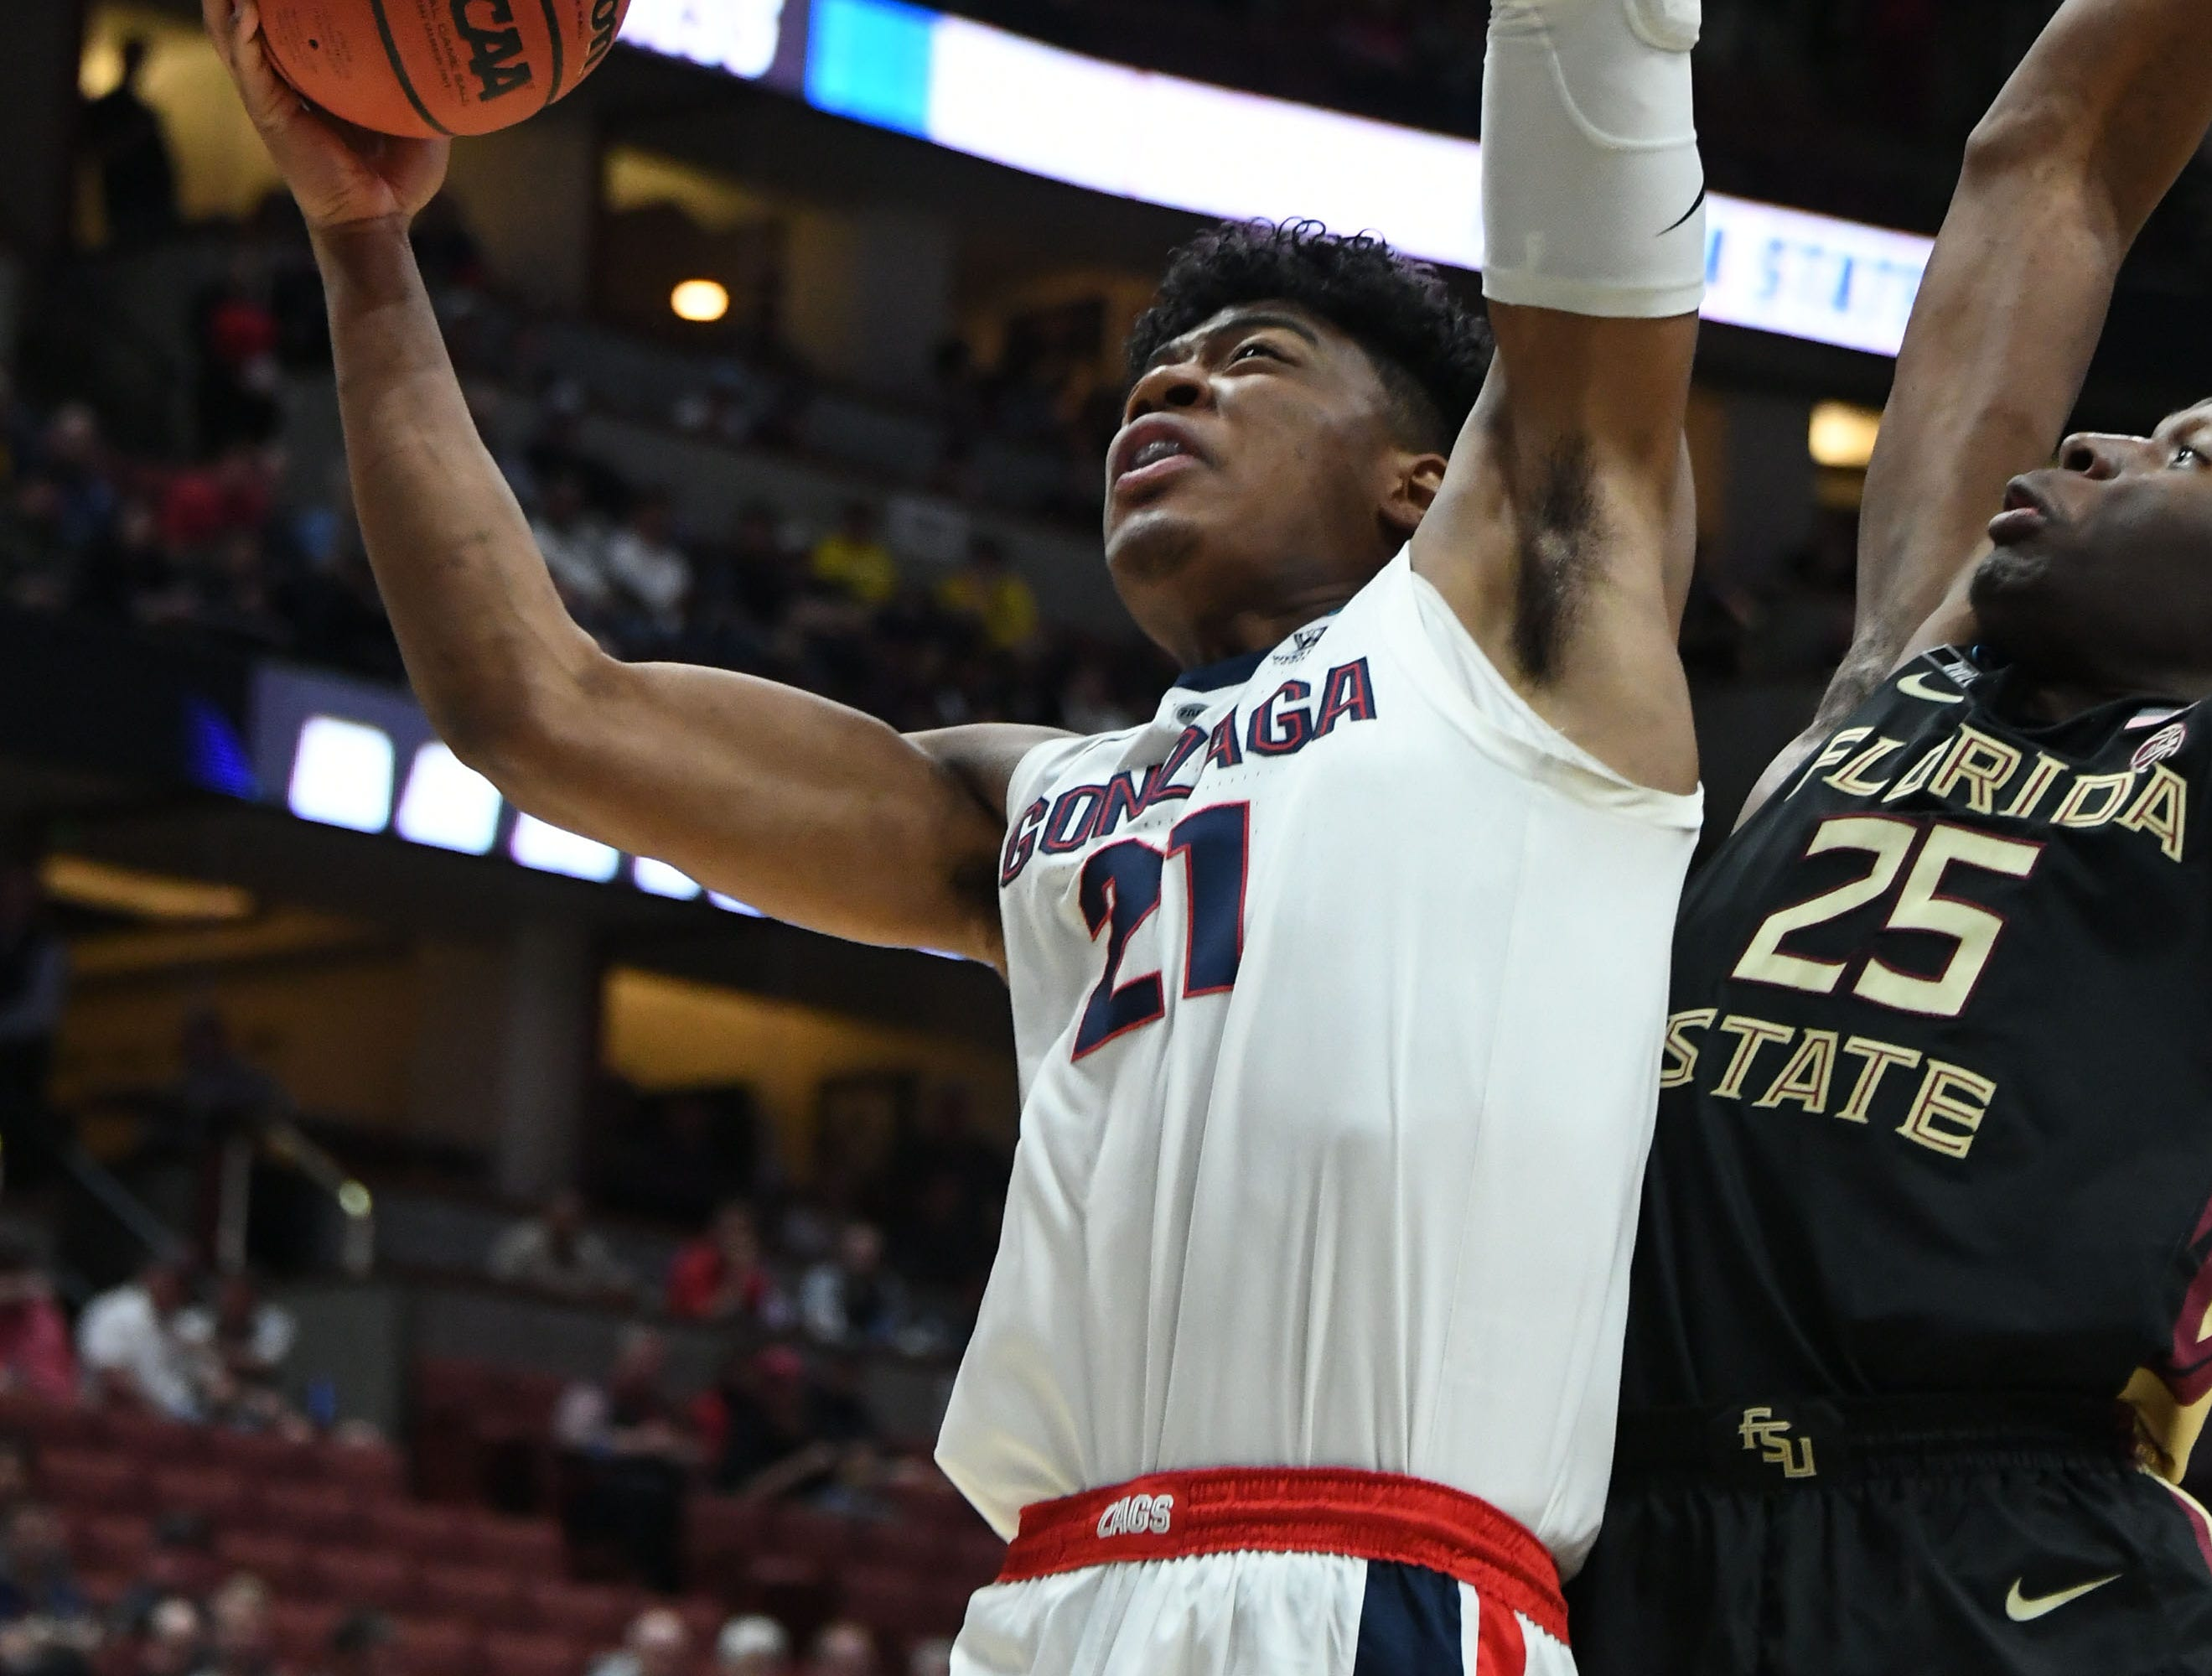 March 28, 2019; Anaheim, CA, USA; Gonzaga Bulldogs forward Rui Hachimura (21) moves to the basket against Florida State Seminoles forward Mfiondu Kabengele (25) during the first half in the semifinals of the west regional of the 2019 NCAA Tournament at Honda Center. Mandatory Credit: Richard Mackson-USA TODAY Sports